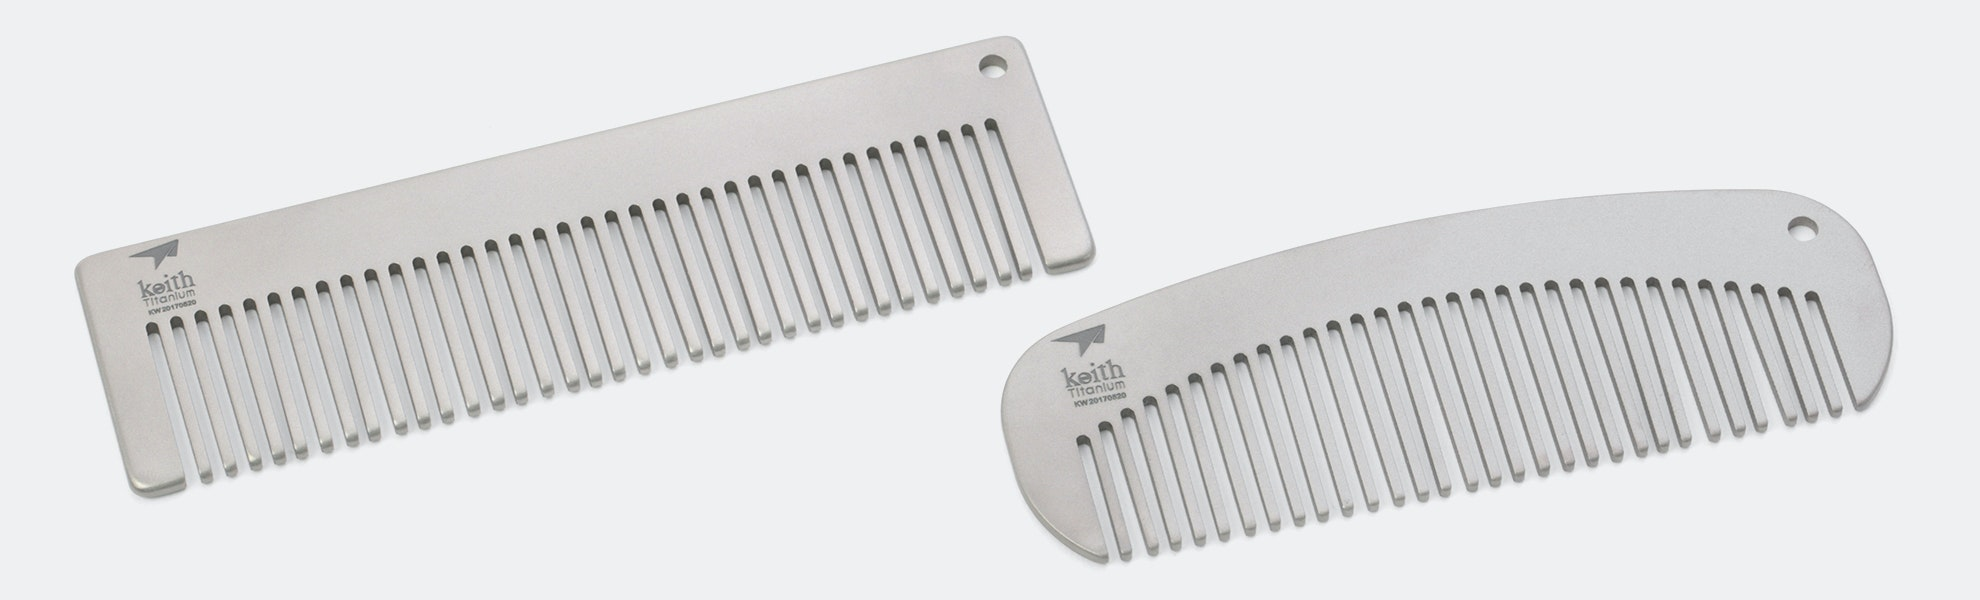 Keith Titanium Combs